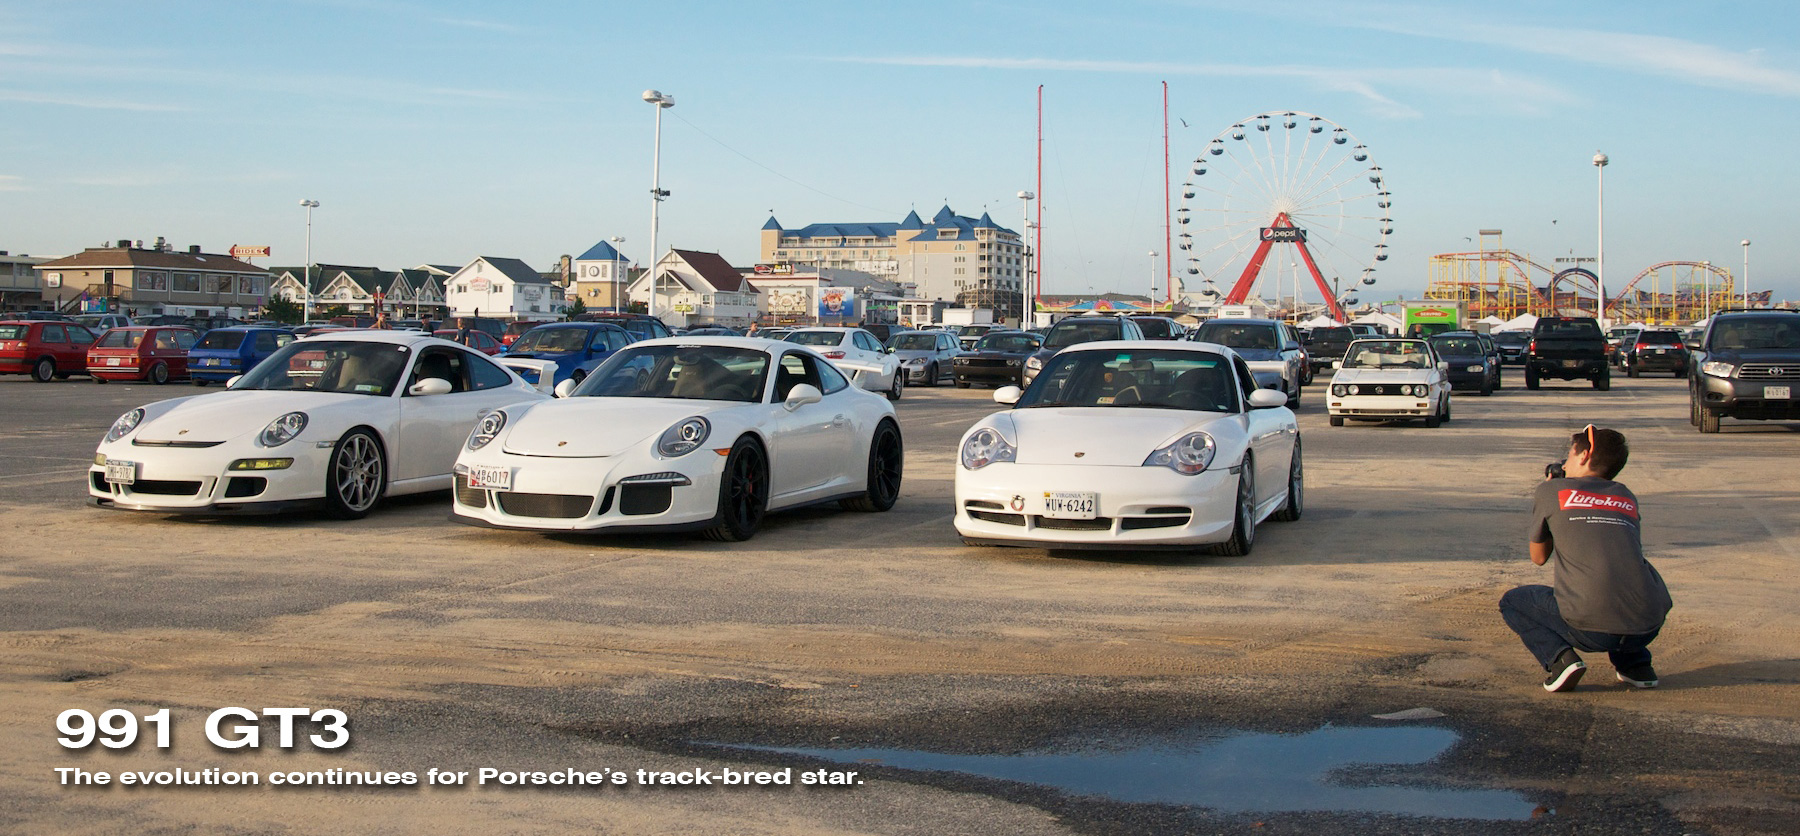 gt3 line up from h2oi car show with someone talking a picture